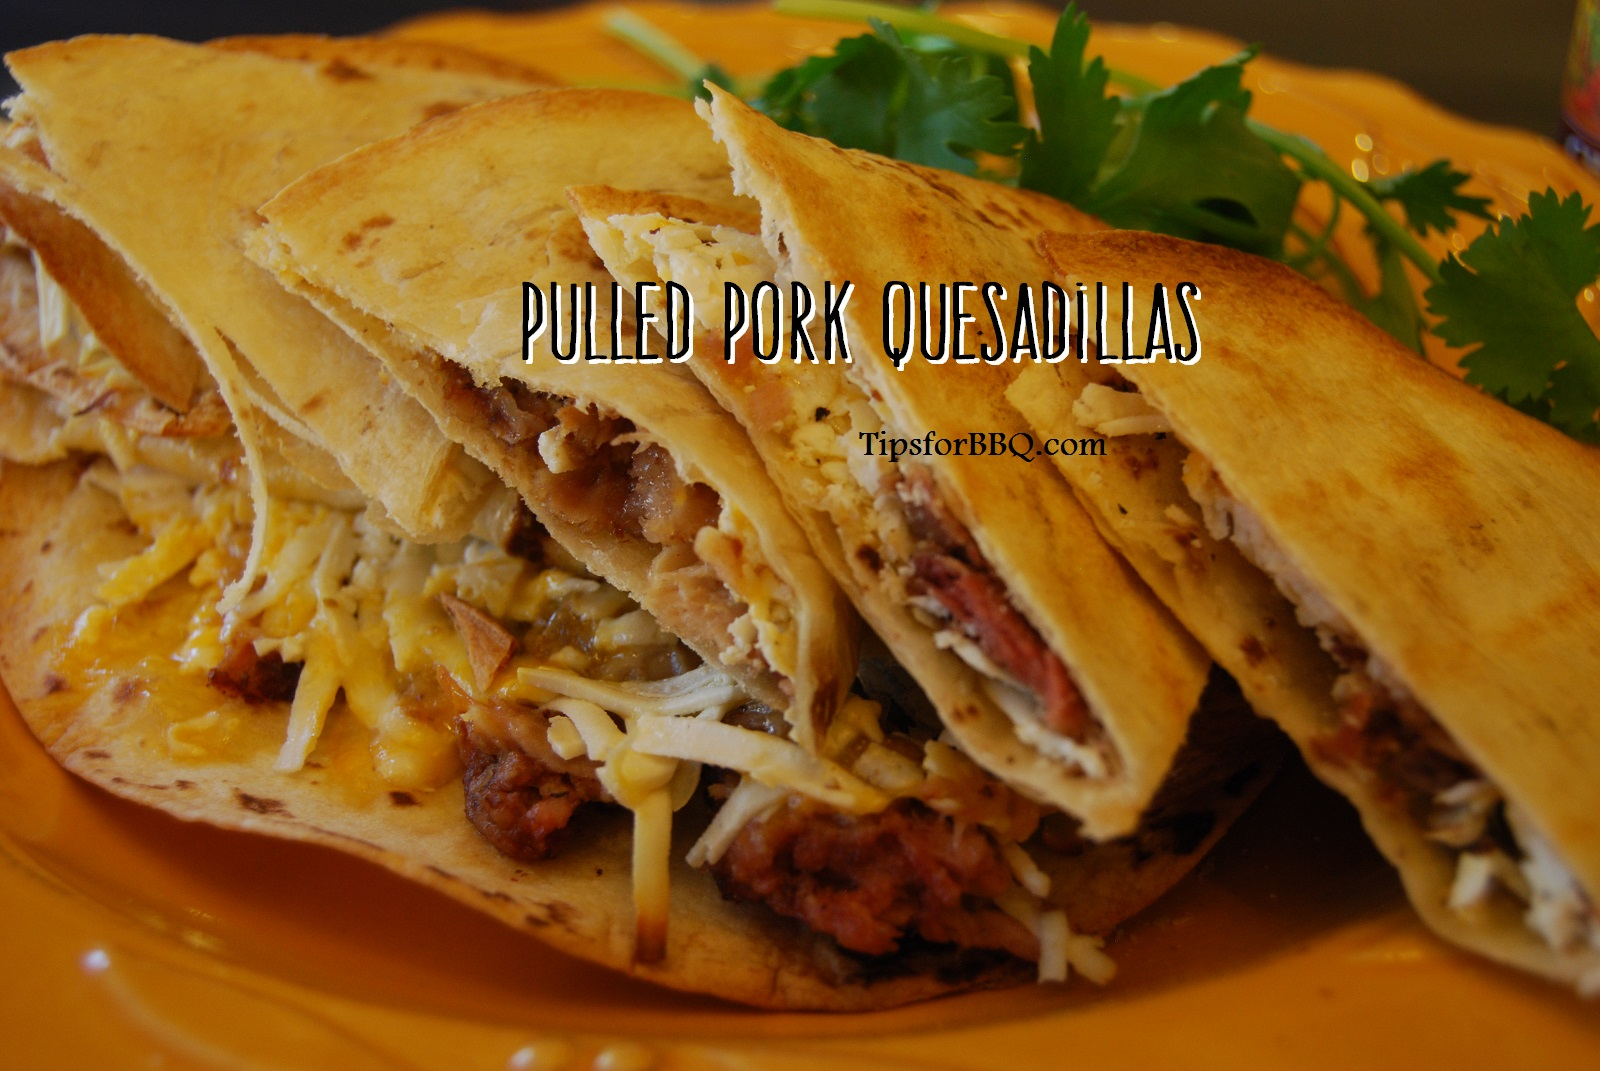 Pork quesadillas recipes easy